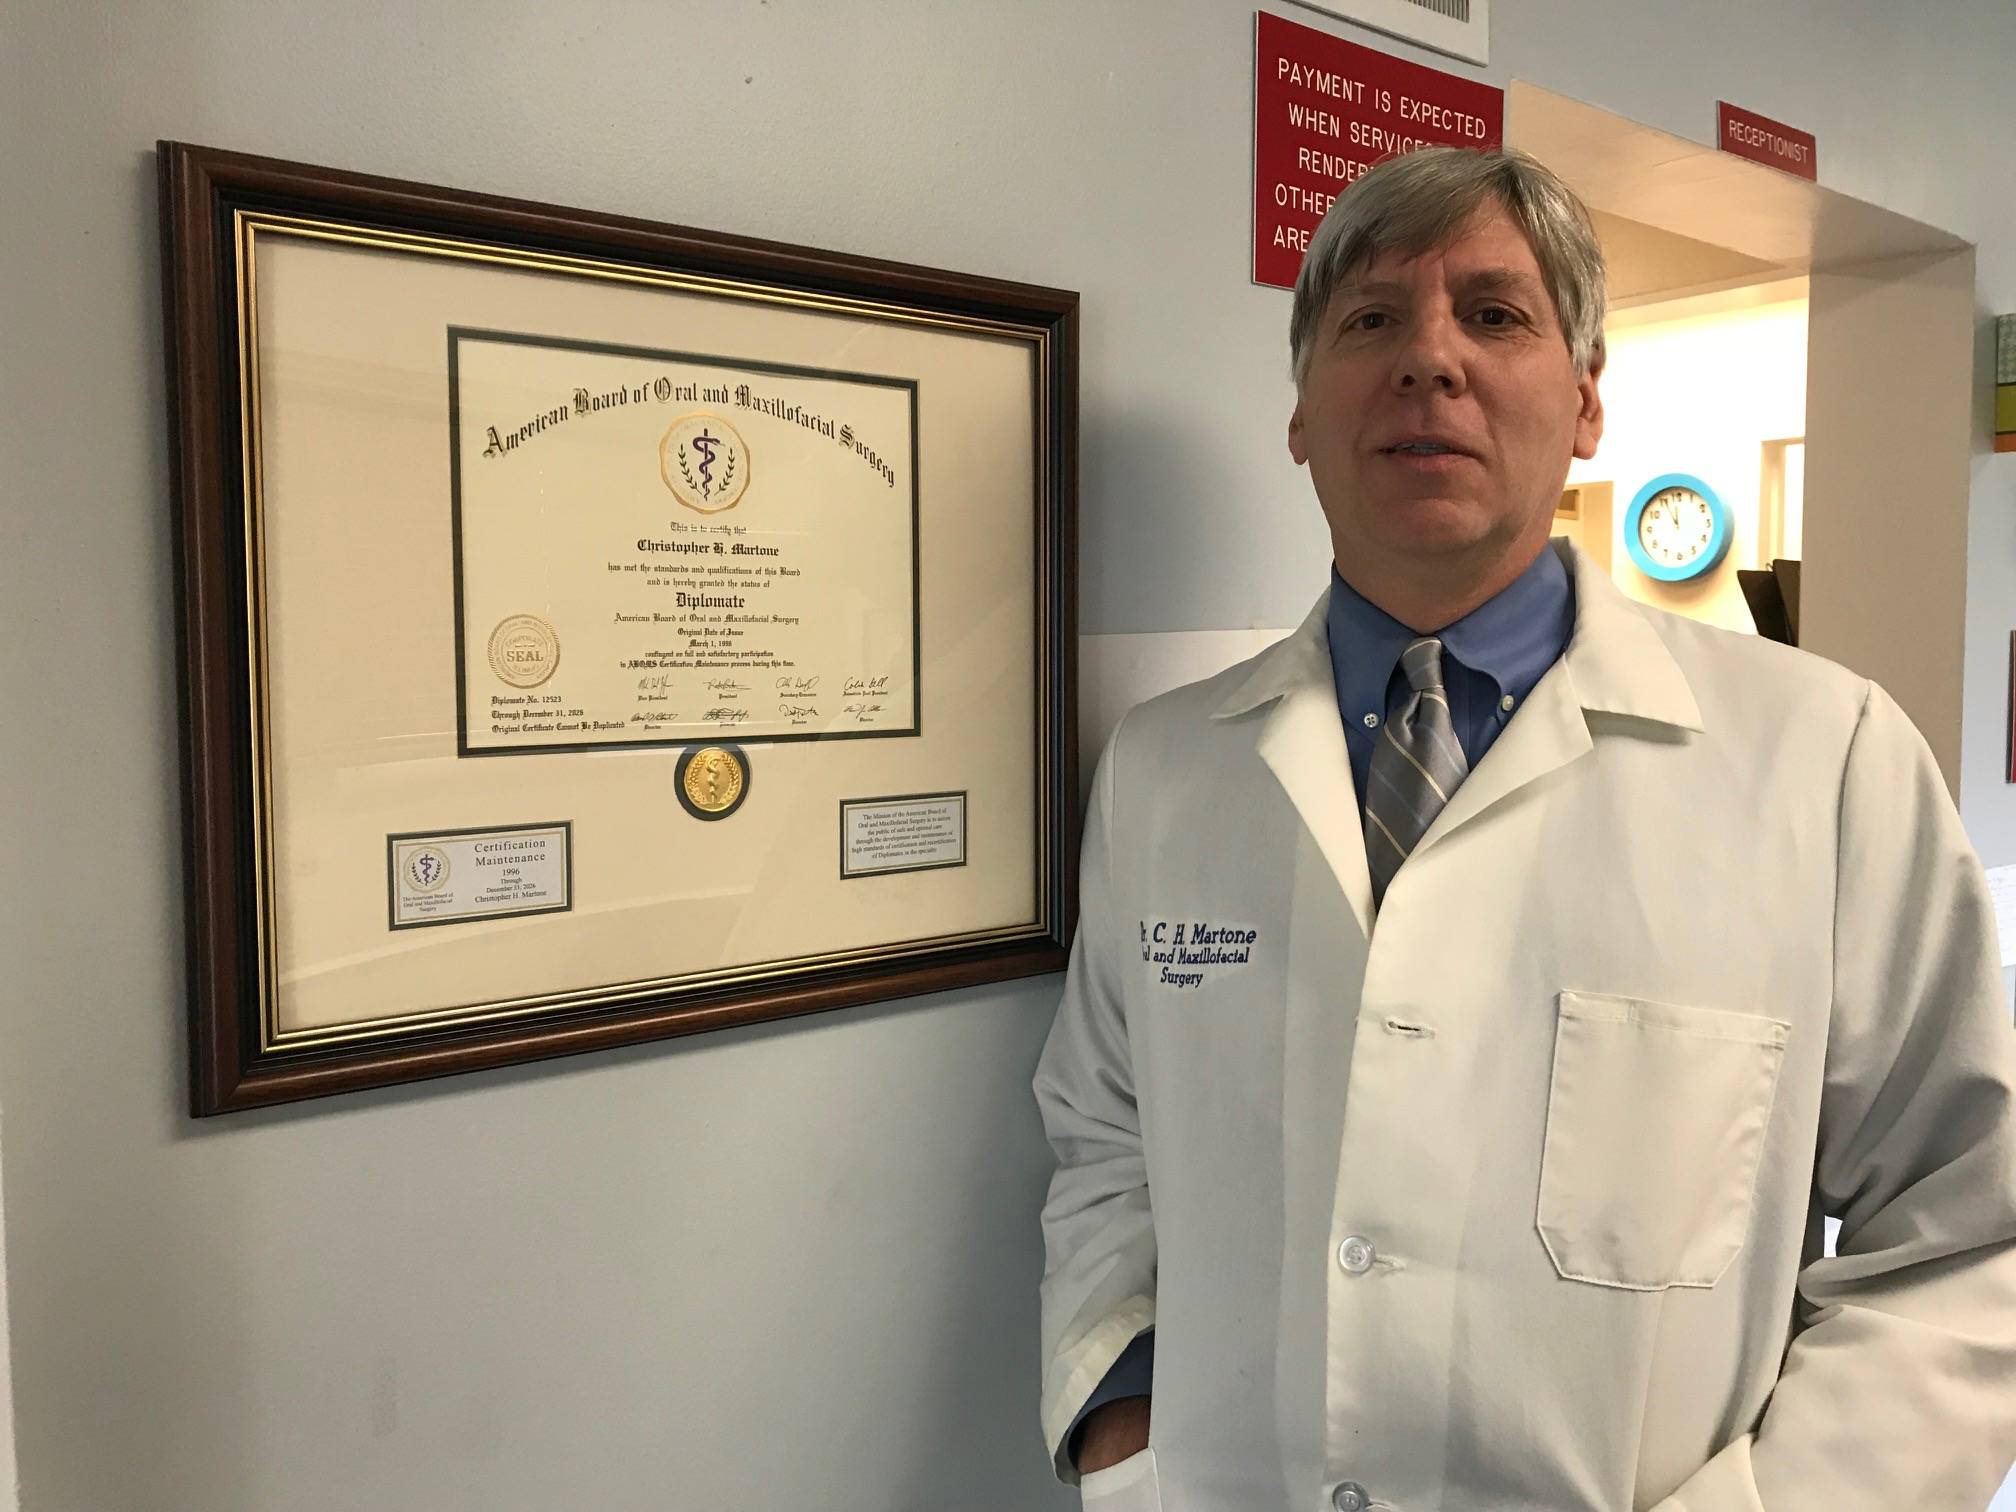 Image of Dr. Christopher H. Martone, DMD, inside his practice